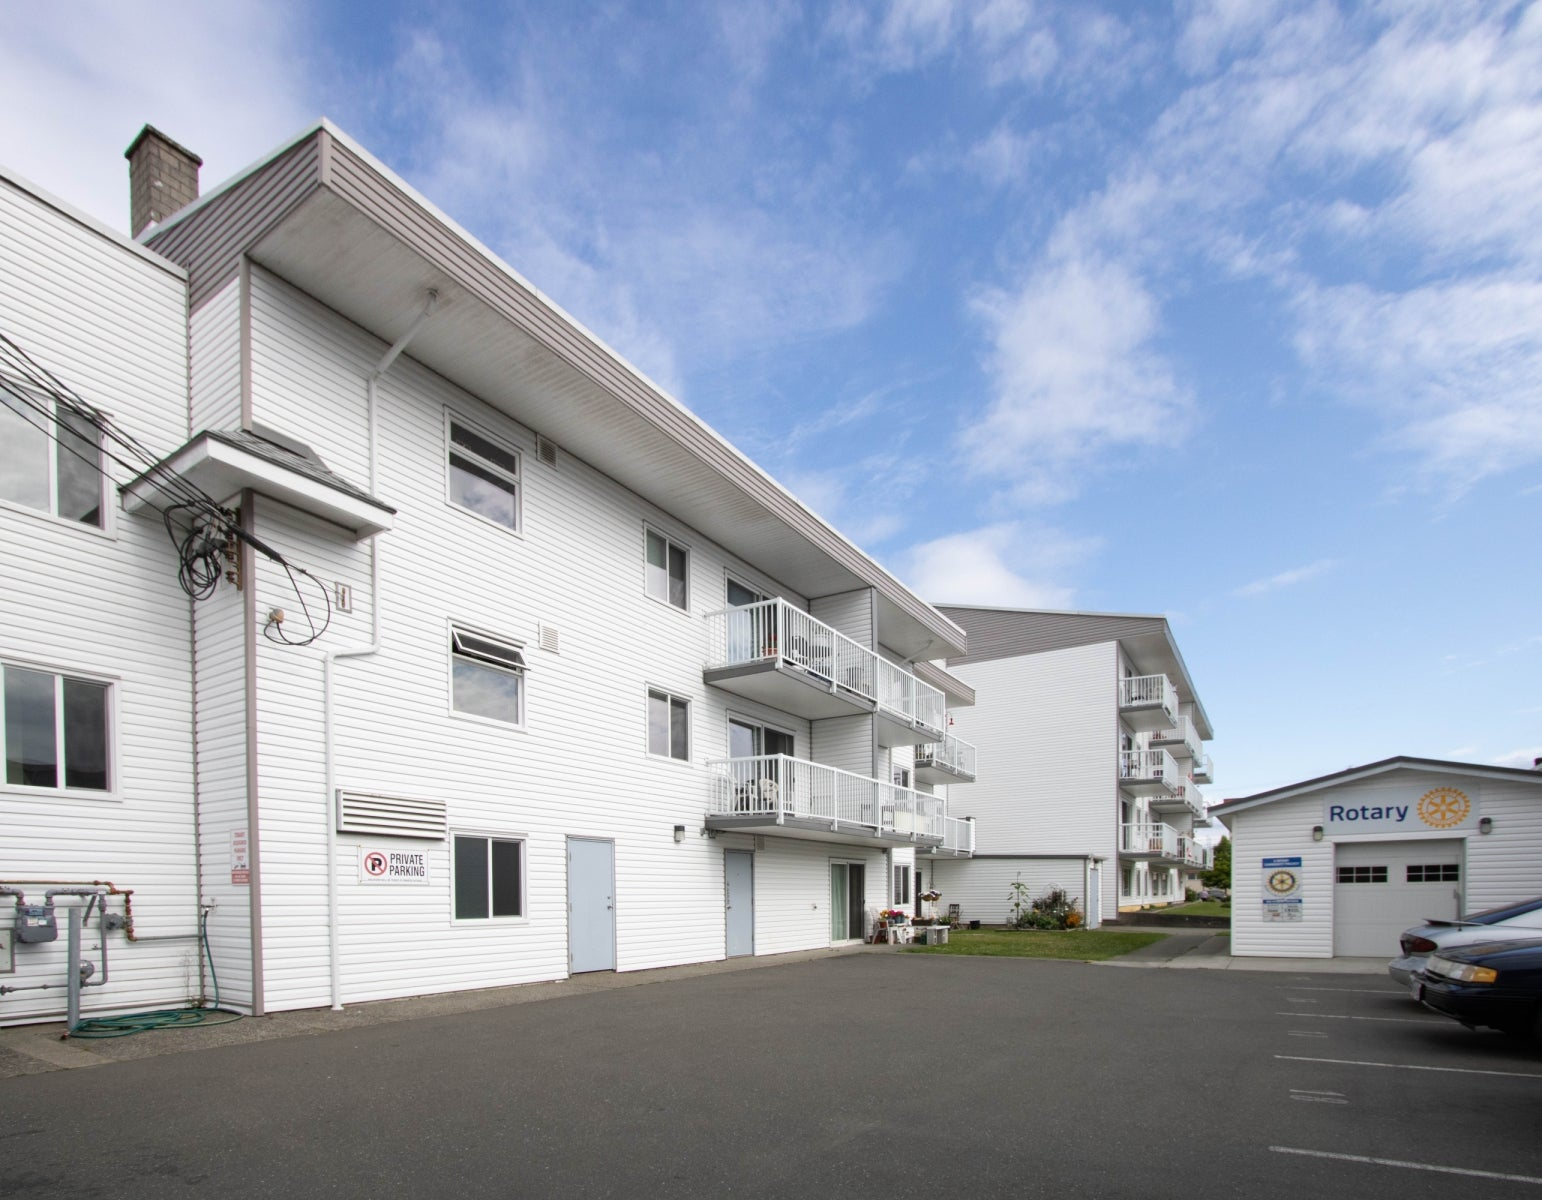 John Perkins Memorial Housing 930 13 Avenue - Waitlist - CR Campbell River Central Condo Apartment for sale(380594) #2